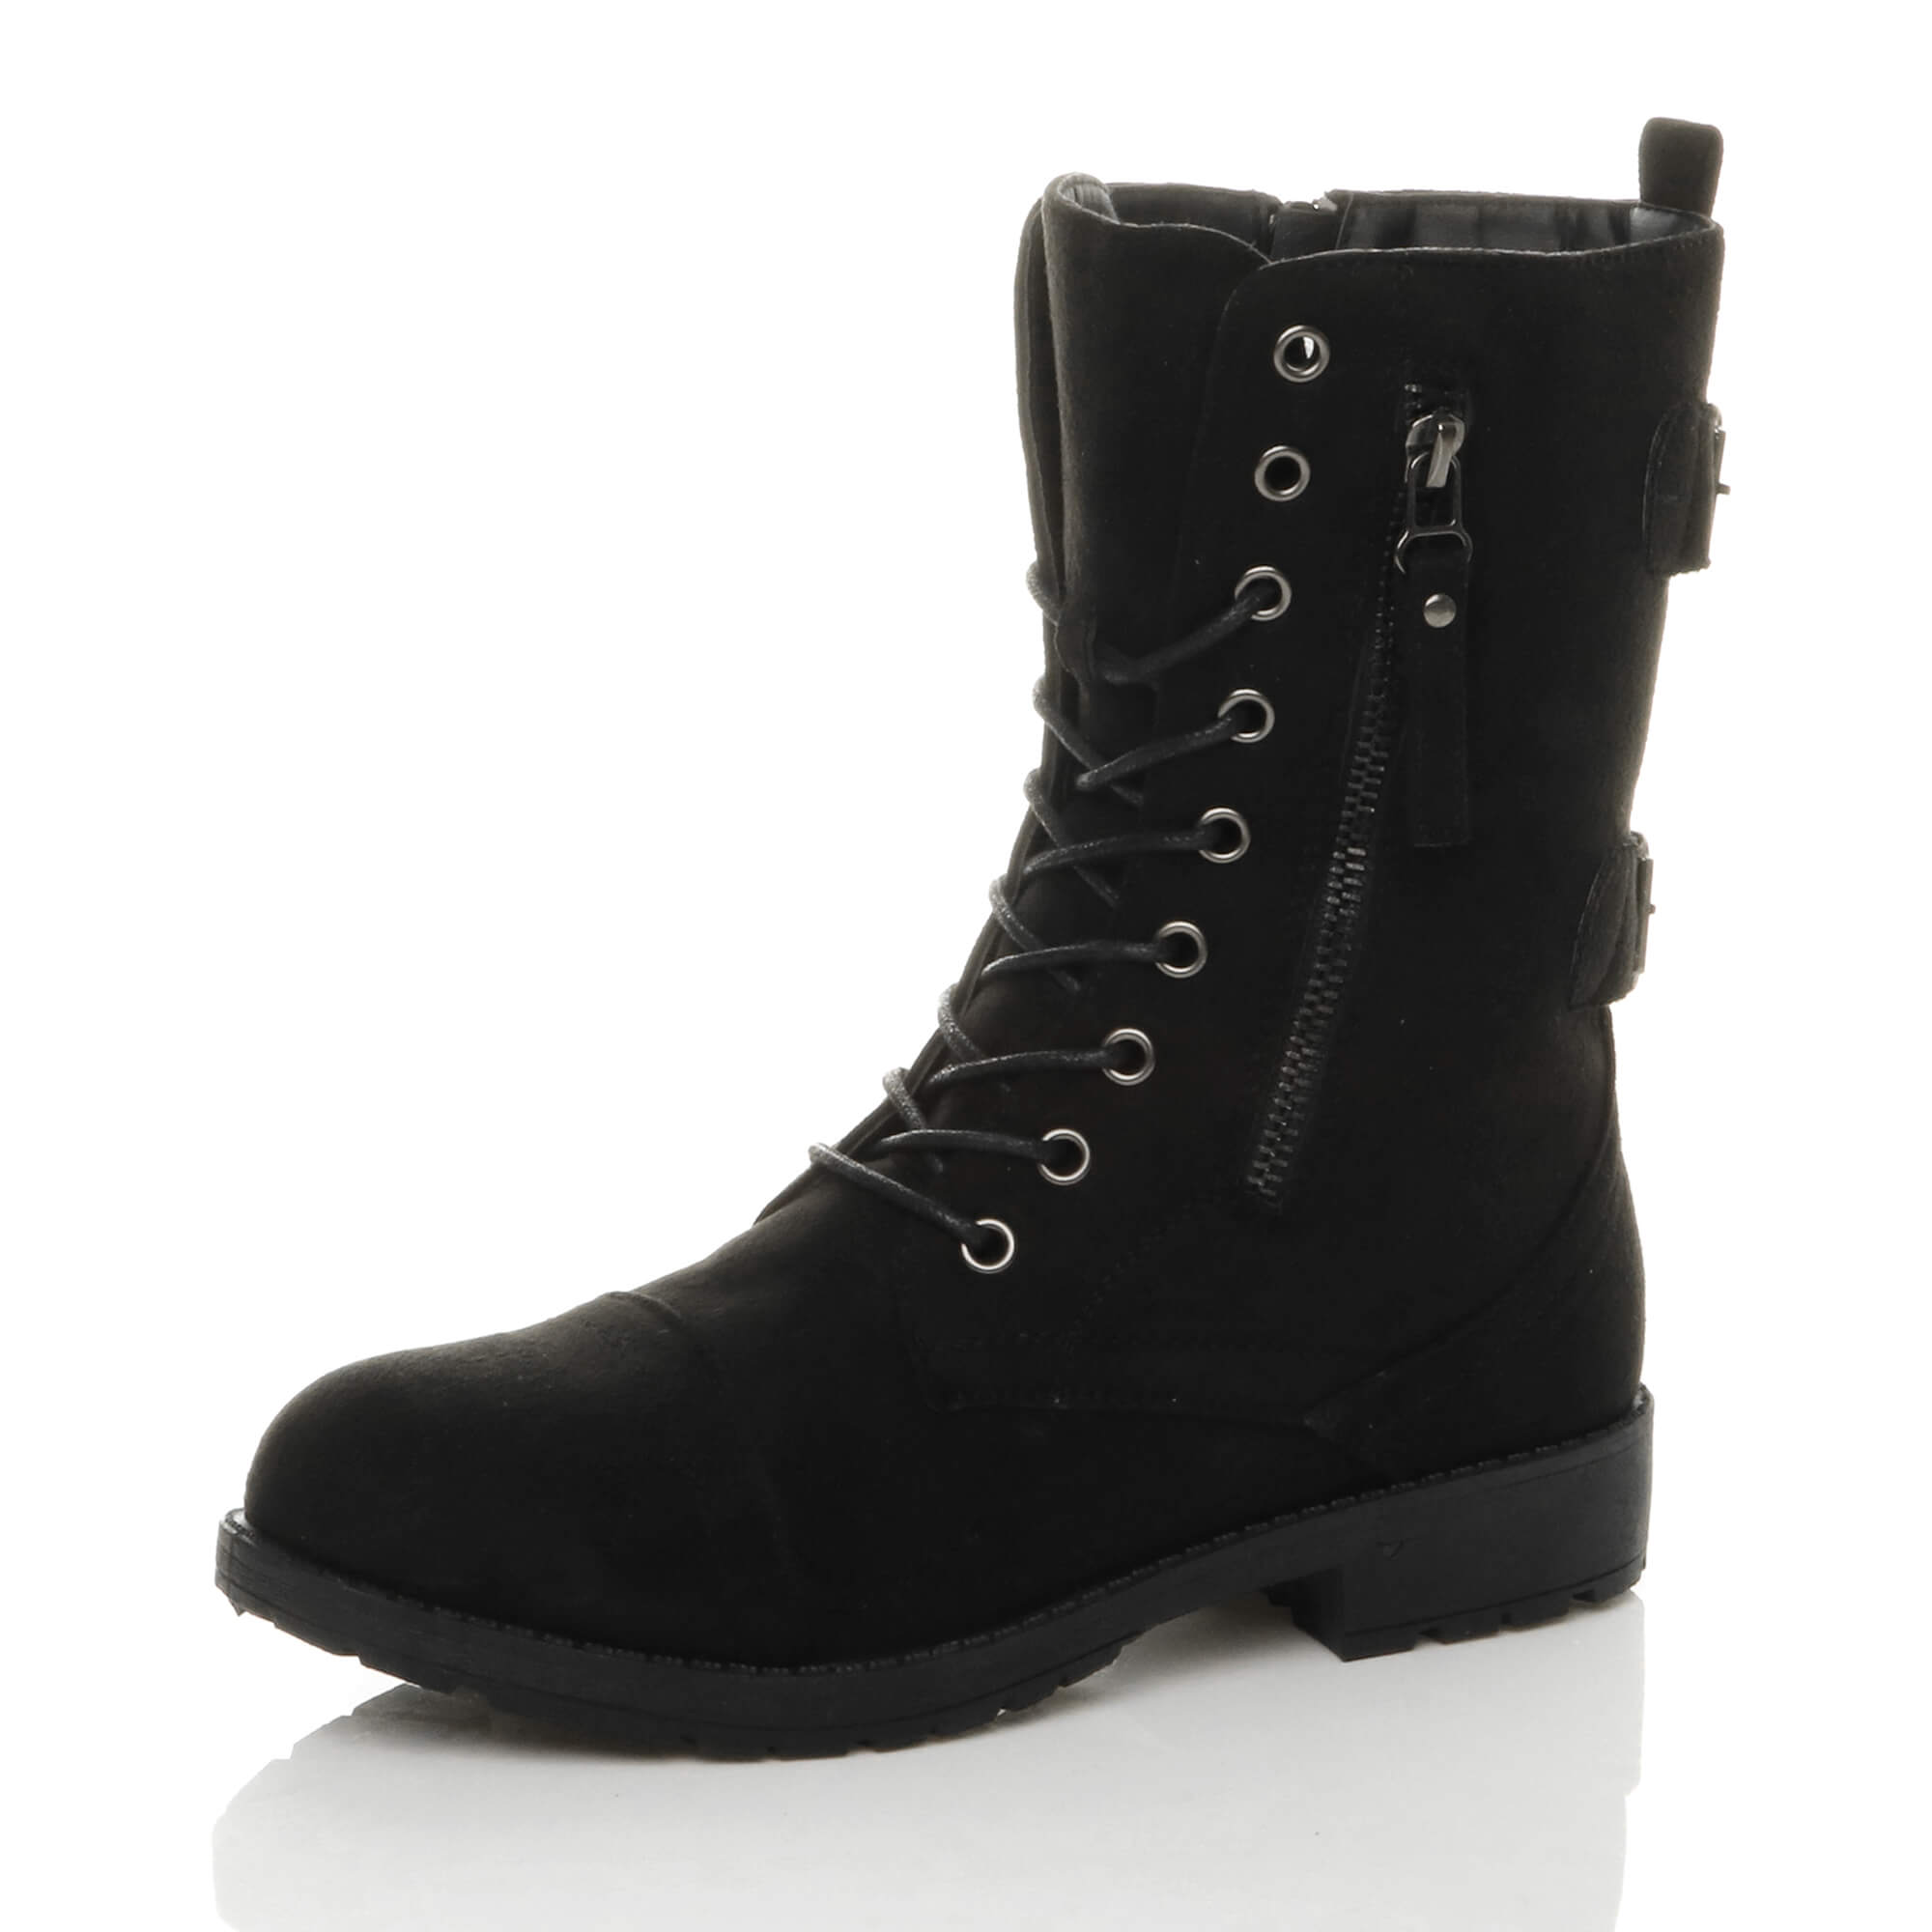 WOMENS-LADIES-LACE-UP-ZIP-PUNK-BIKER-COMBAT-WORKER-MILITARY-ARMY-ANKLE-BOOTS